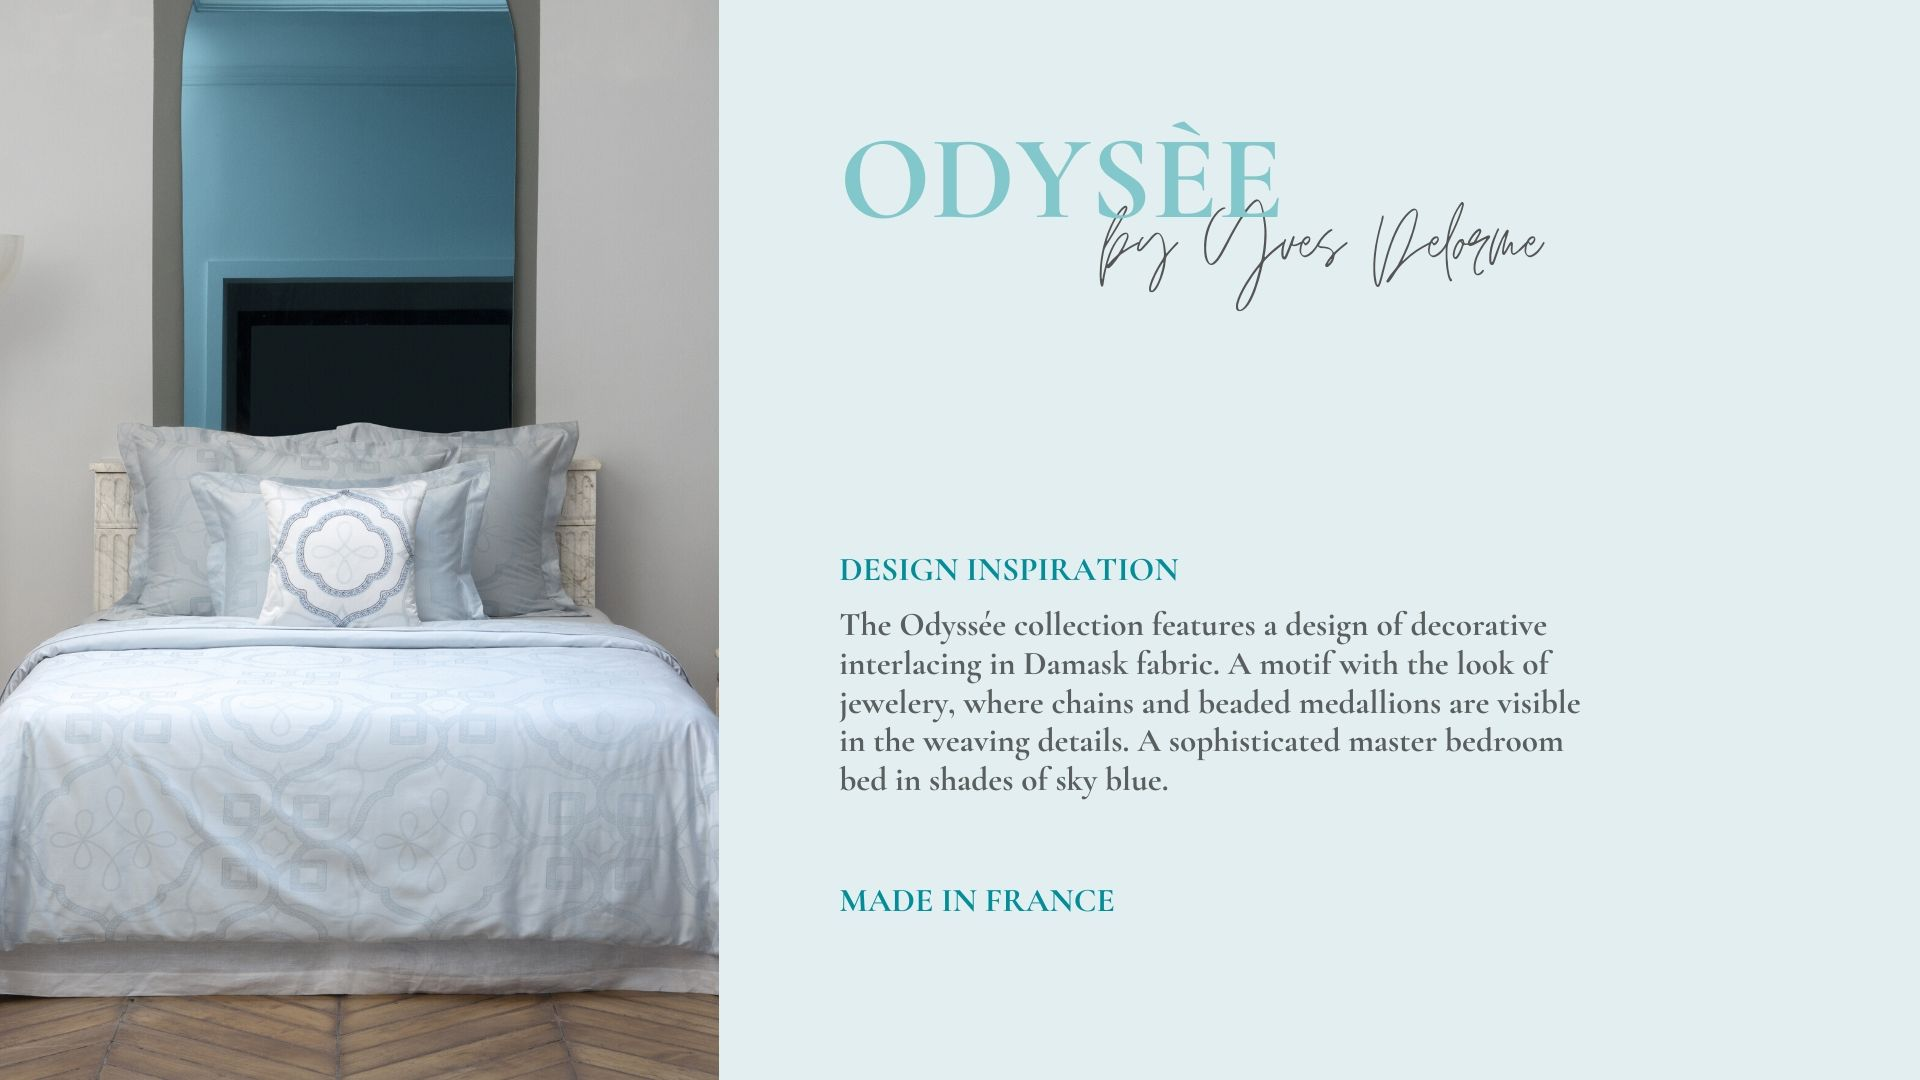 Odyssee Jacquard Duvet Cover and Shams Made by Yves Delorme